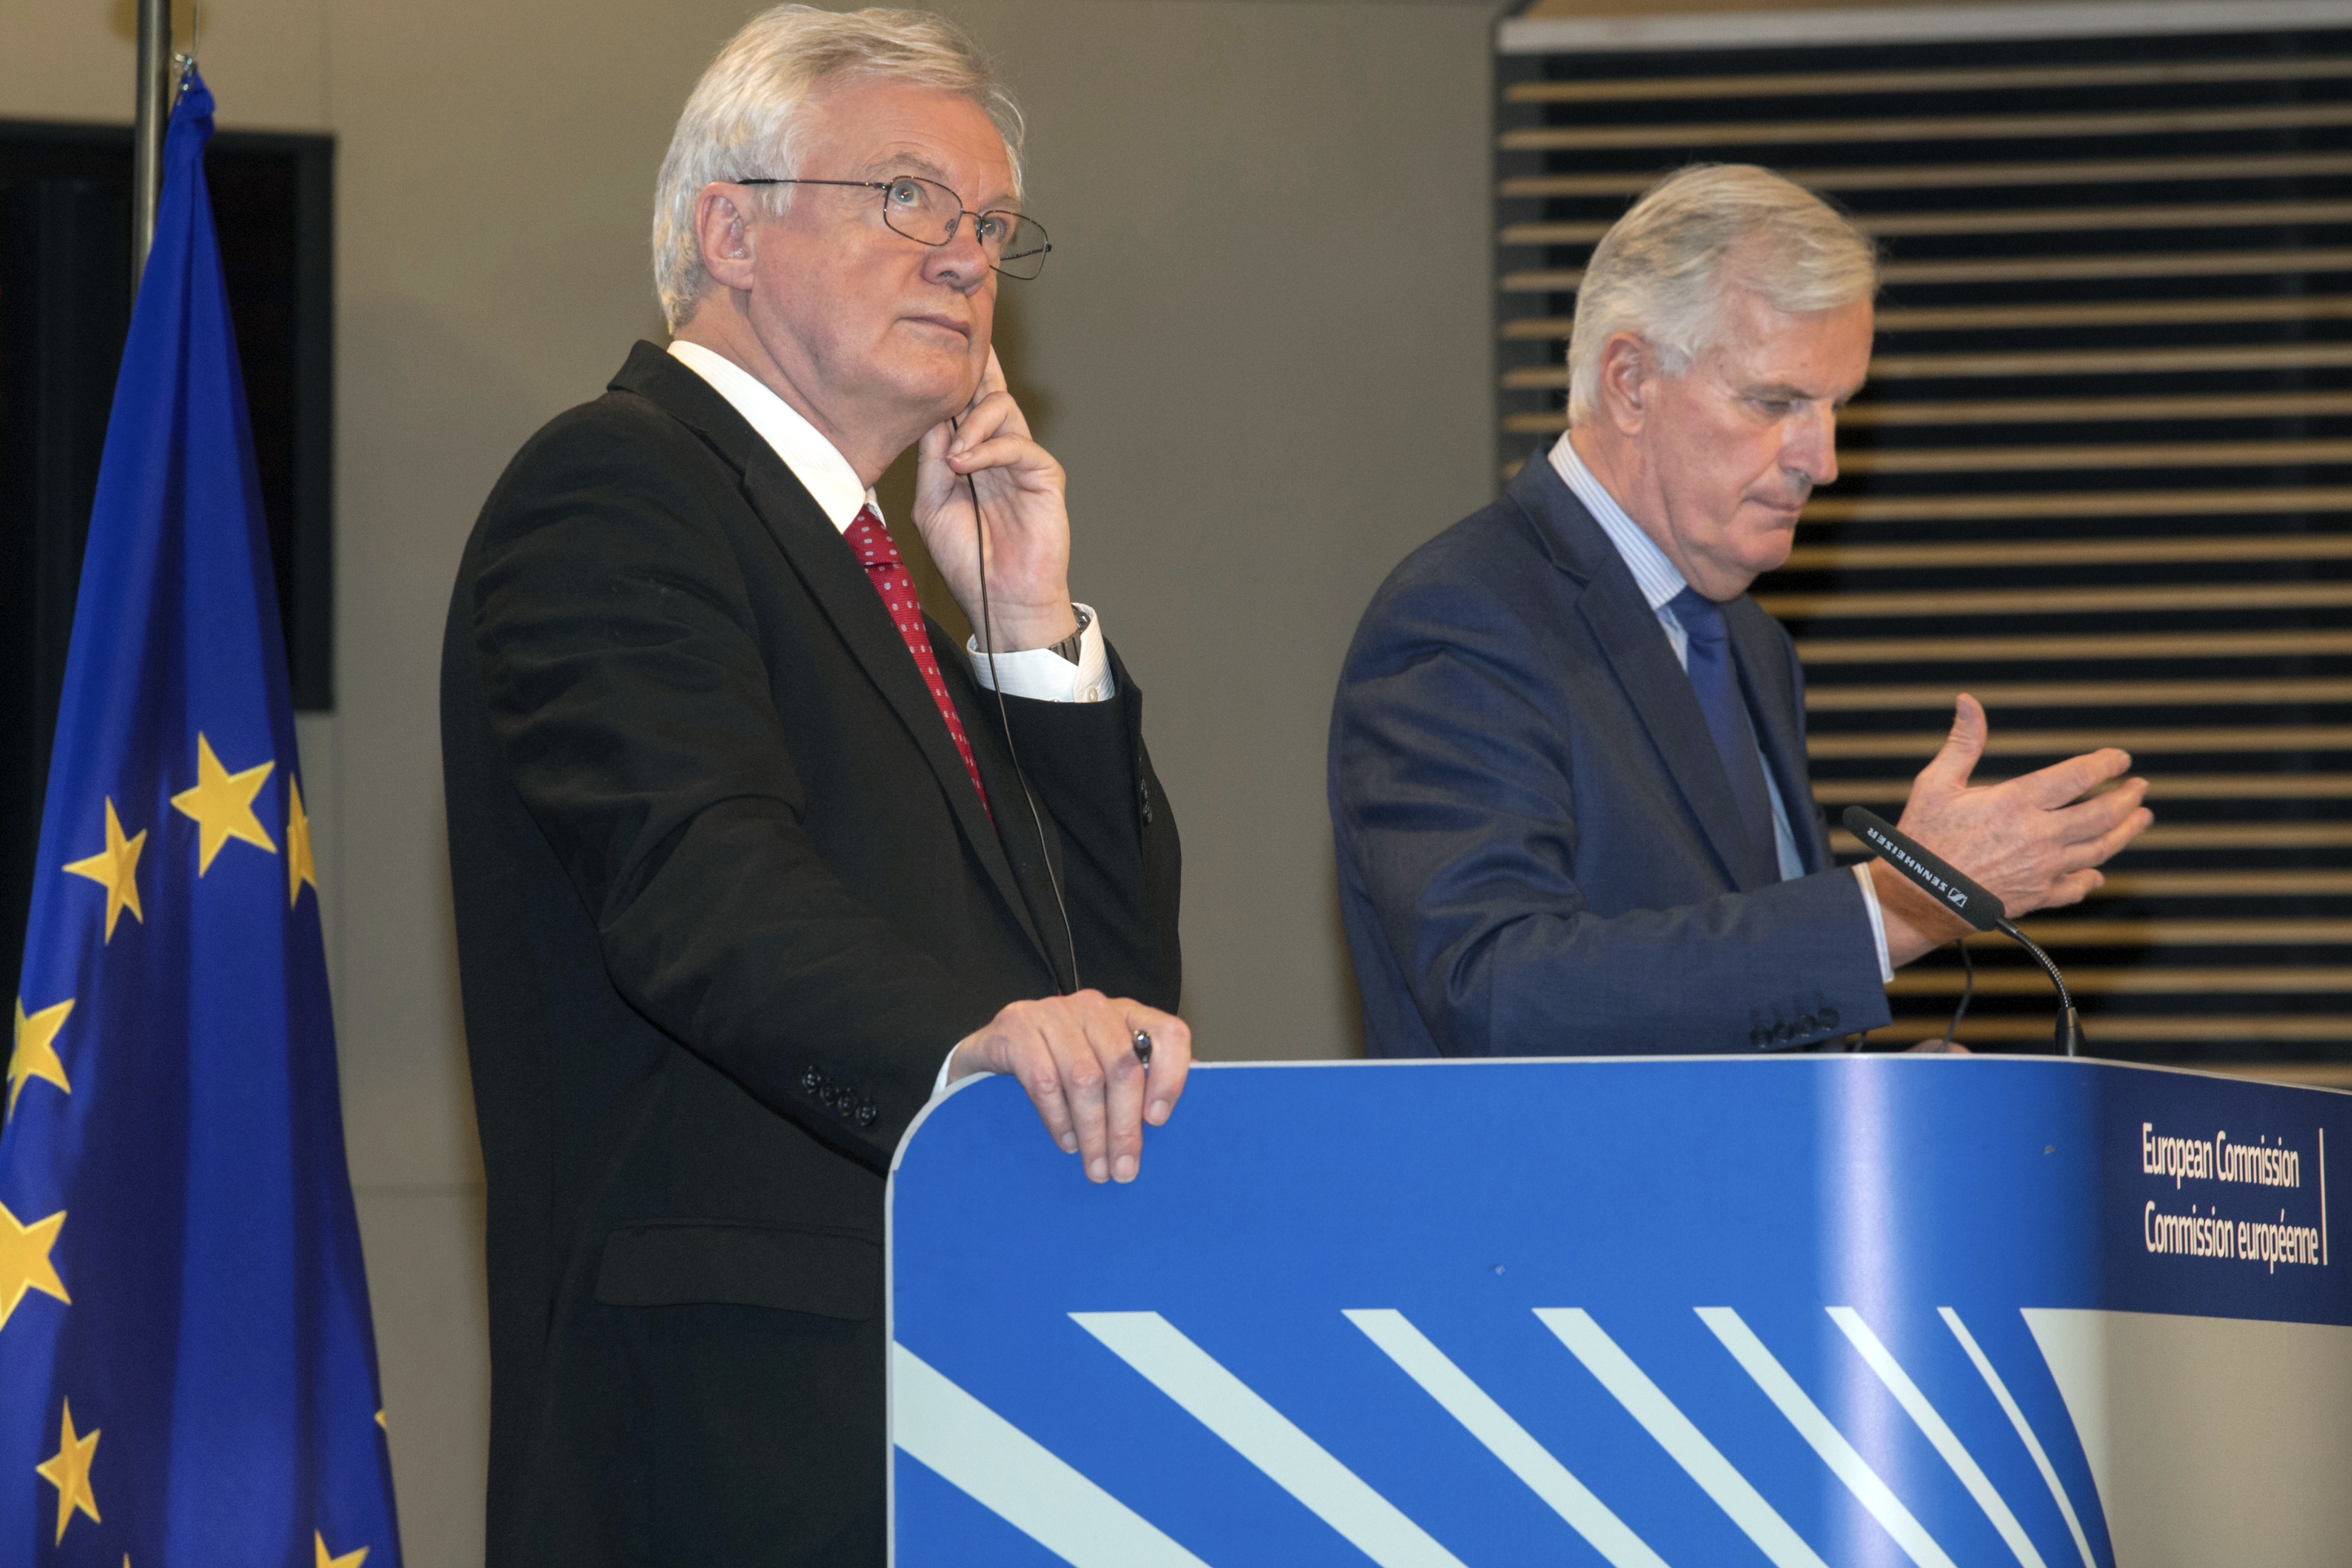 British Secretary of State for Exiting the European Union, David Davis left, and European Union chief Brexit negotiator Michel Barnier participate in a media conference at EU headquarters in Brussels, Oct. 12, 2017.